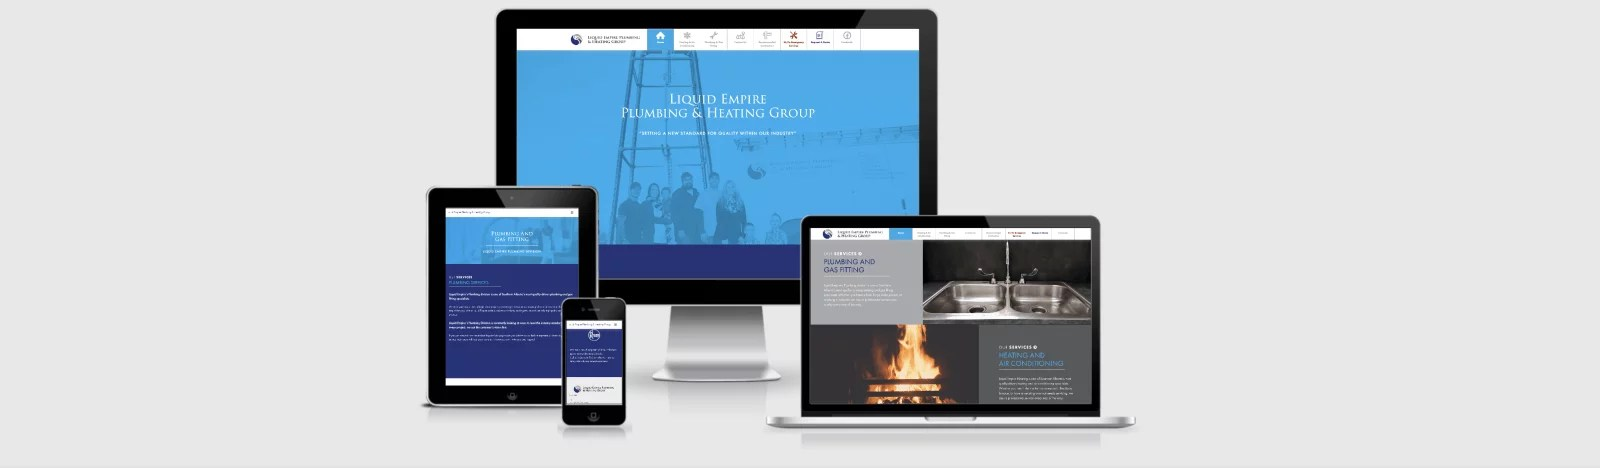 Web Design Markup for Liquid Empire Plumbing & Heating by Artrageous Advertising